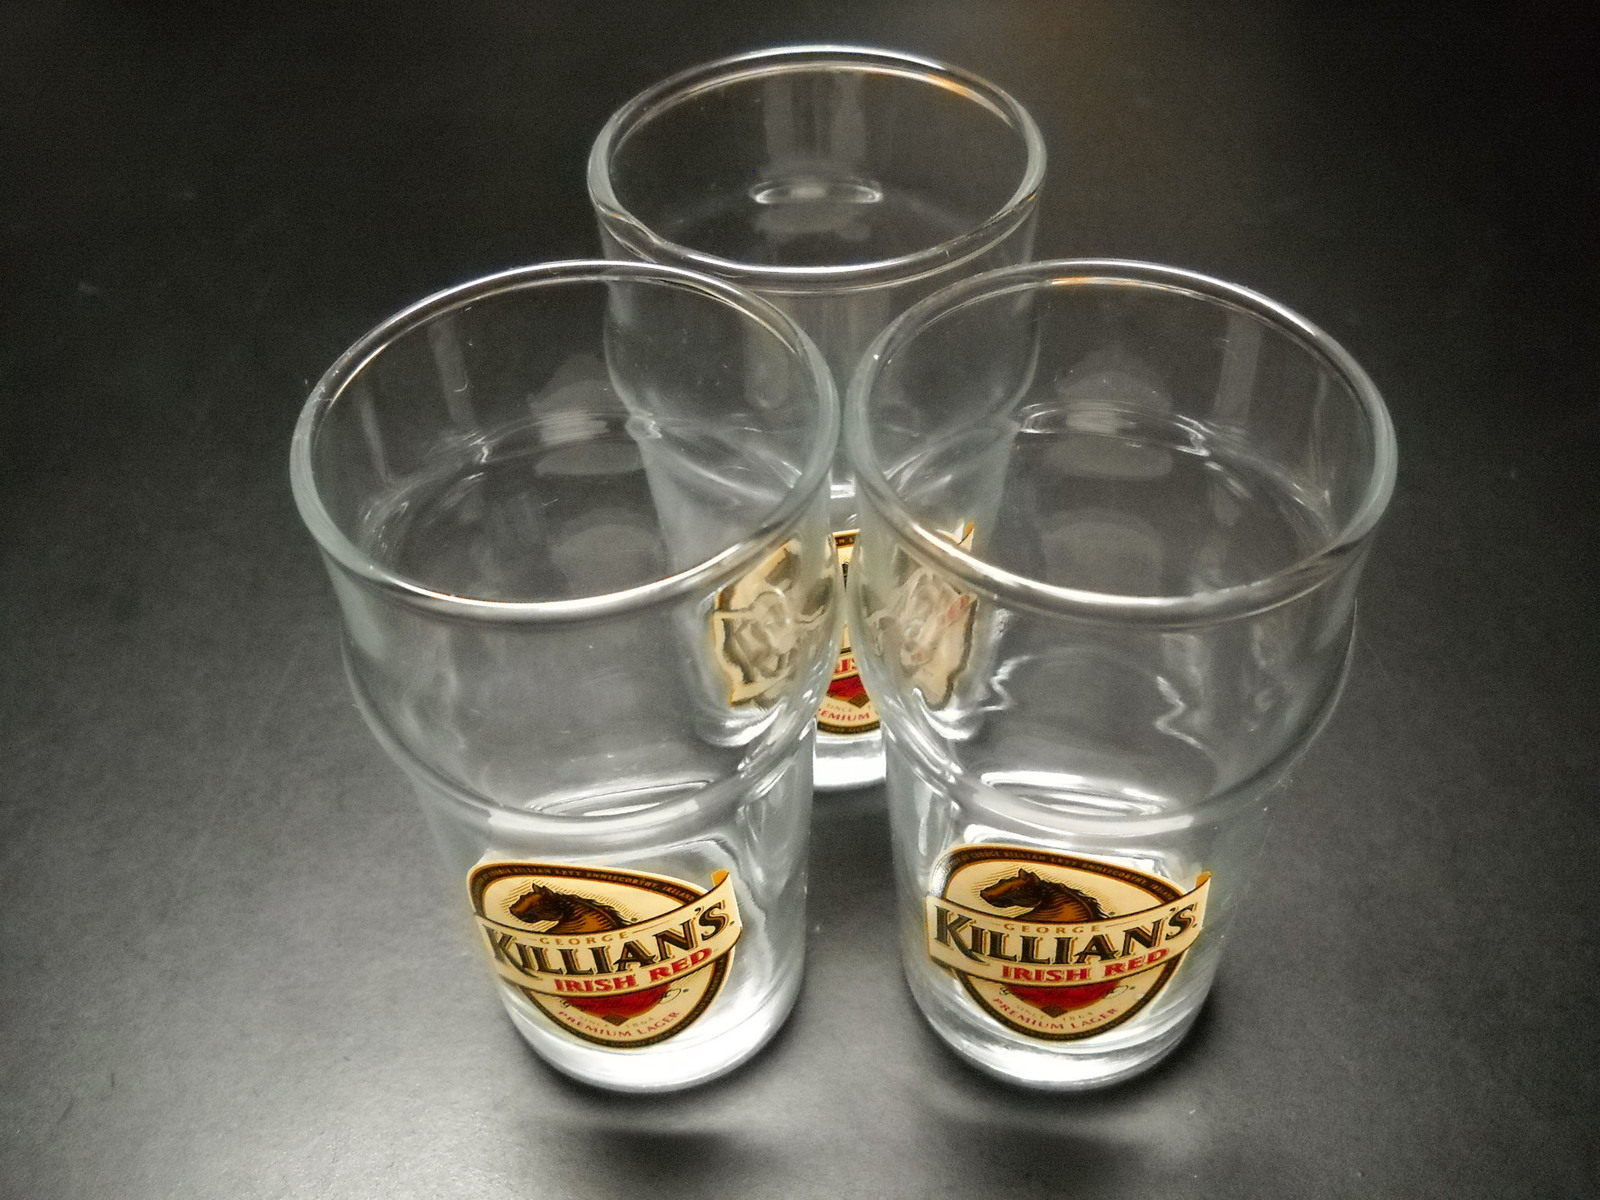 Killian's Irish Red Miniature Pint Glasses Lot of Three Made in Germany Lager